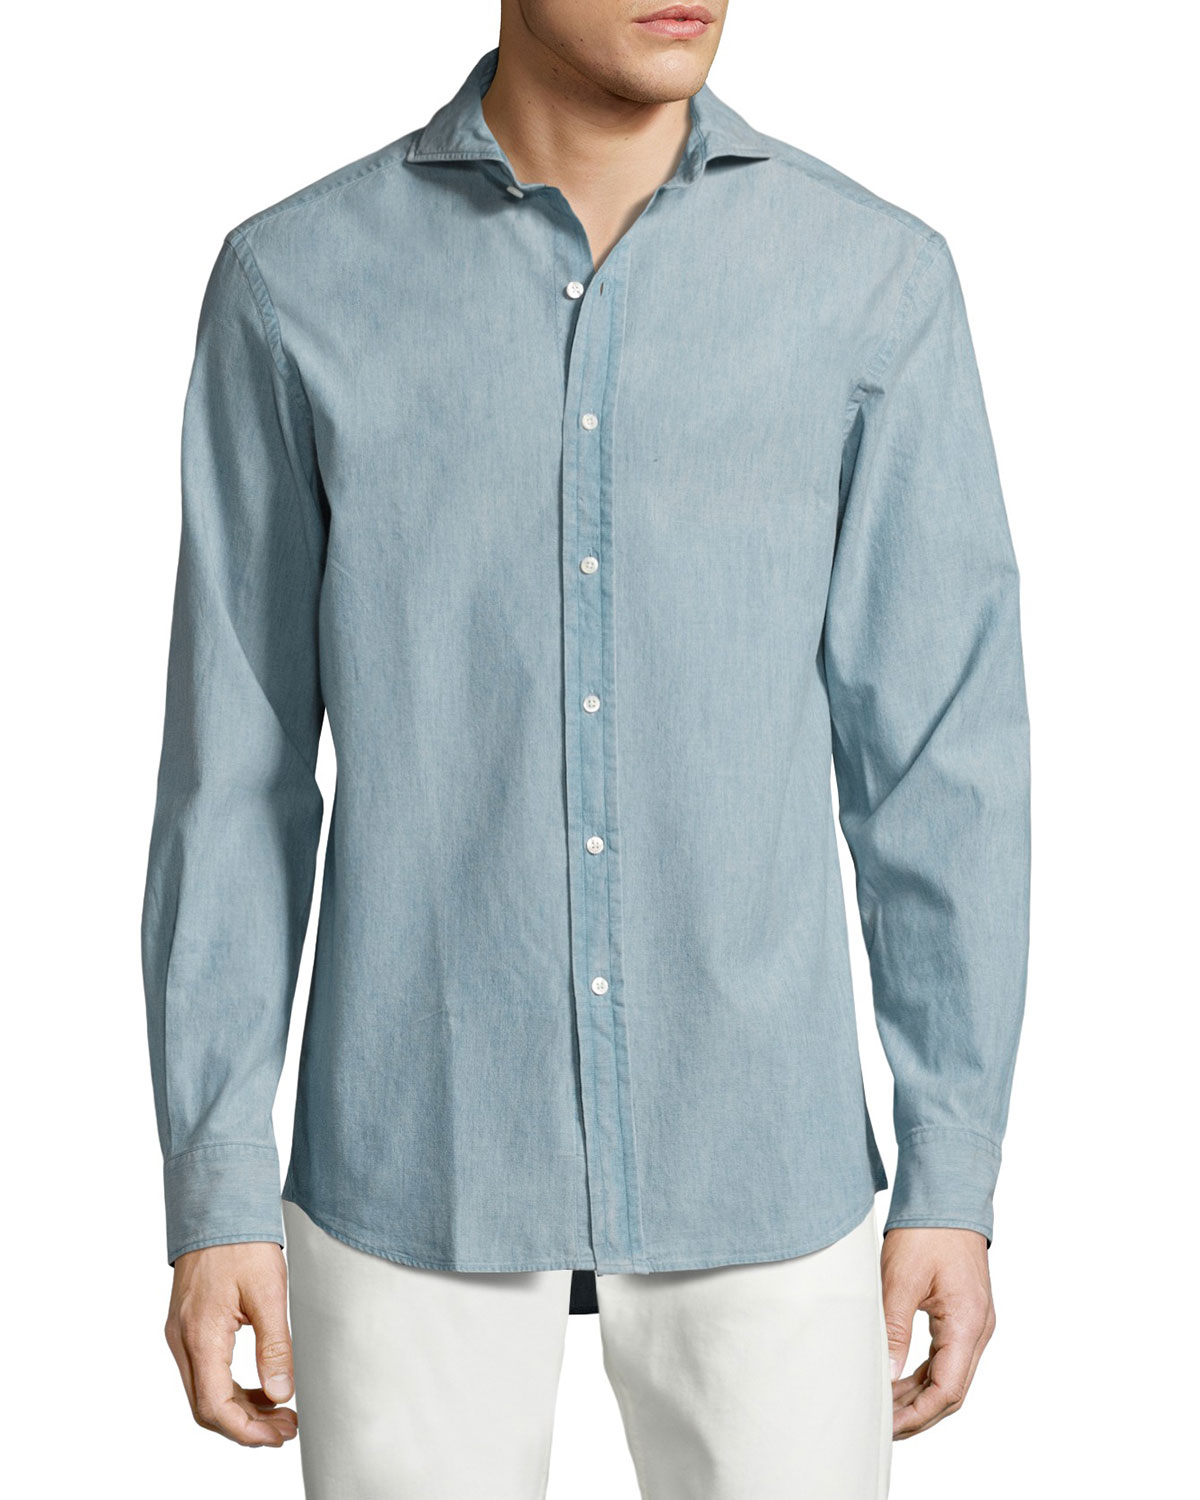 Ralph Lauren T-shirts CHAMBRAY SPORT SHIRT, LIGHT BLUE